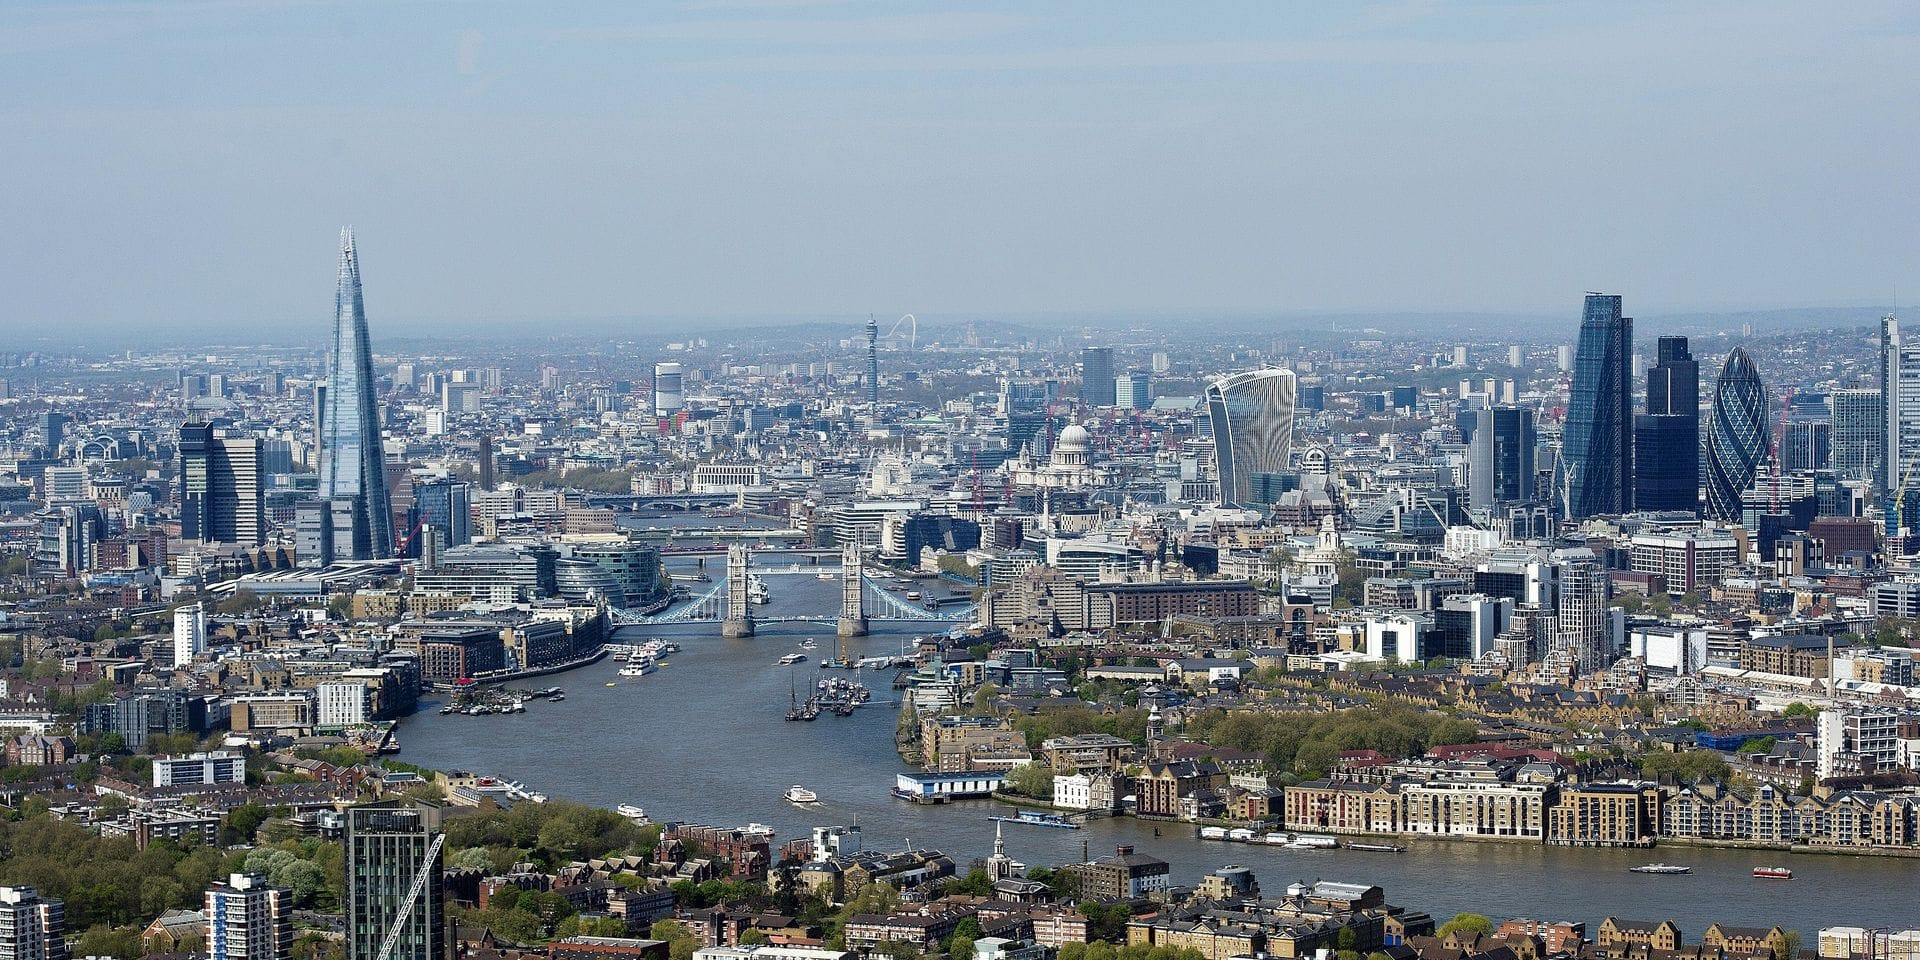 151641, Aerial photograph of The City of London including The Shard and the Gurkin. London, United Kingdom - Sunday May 8, 2016. UK, FRANCE, AUS, NZ, CHINA, HONGKONG, TAIWAN, SPAIN & ITALY OUT Photograph: © i-Images, PacificCoastNews. Los Angeles Office: +1 310.822.0419 UK Office: +44 (0) 20 7421 6000 sales@pacificcoastnews.com FEE MUST BE AGREED PRIOR TO USAGE PICTURE NOT INCLUDED IN THE CONTRACT